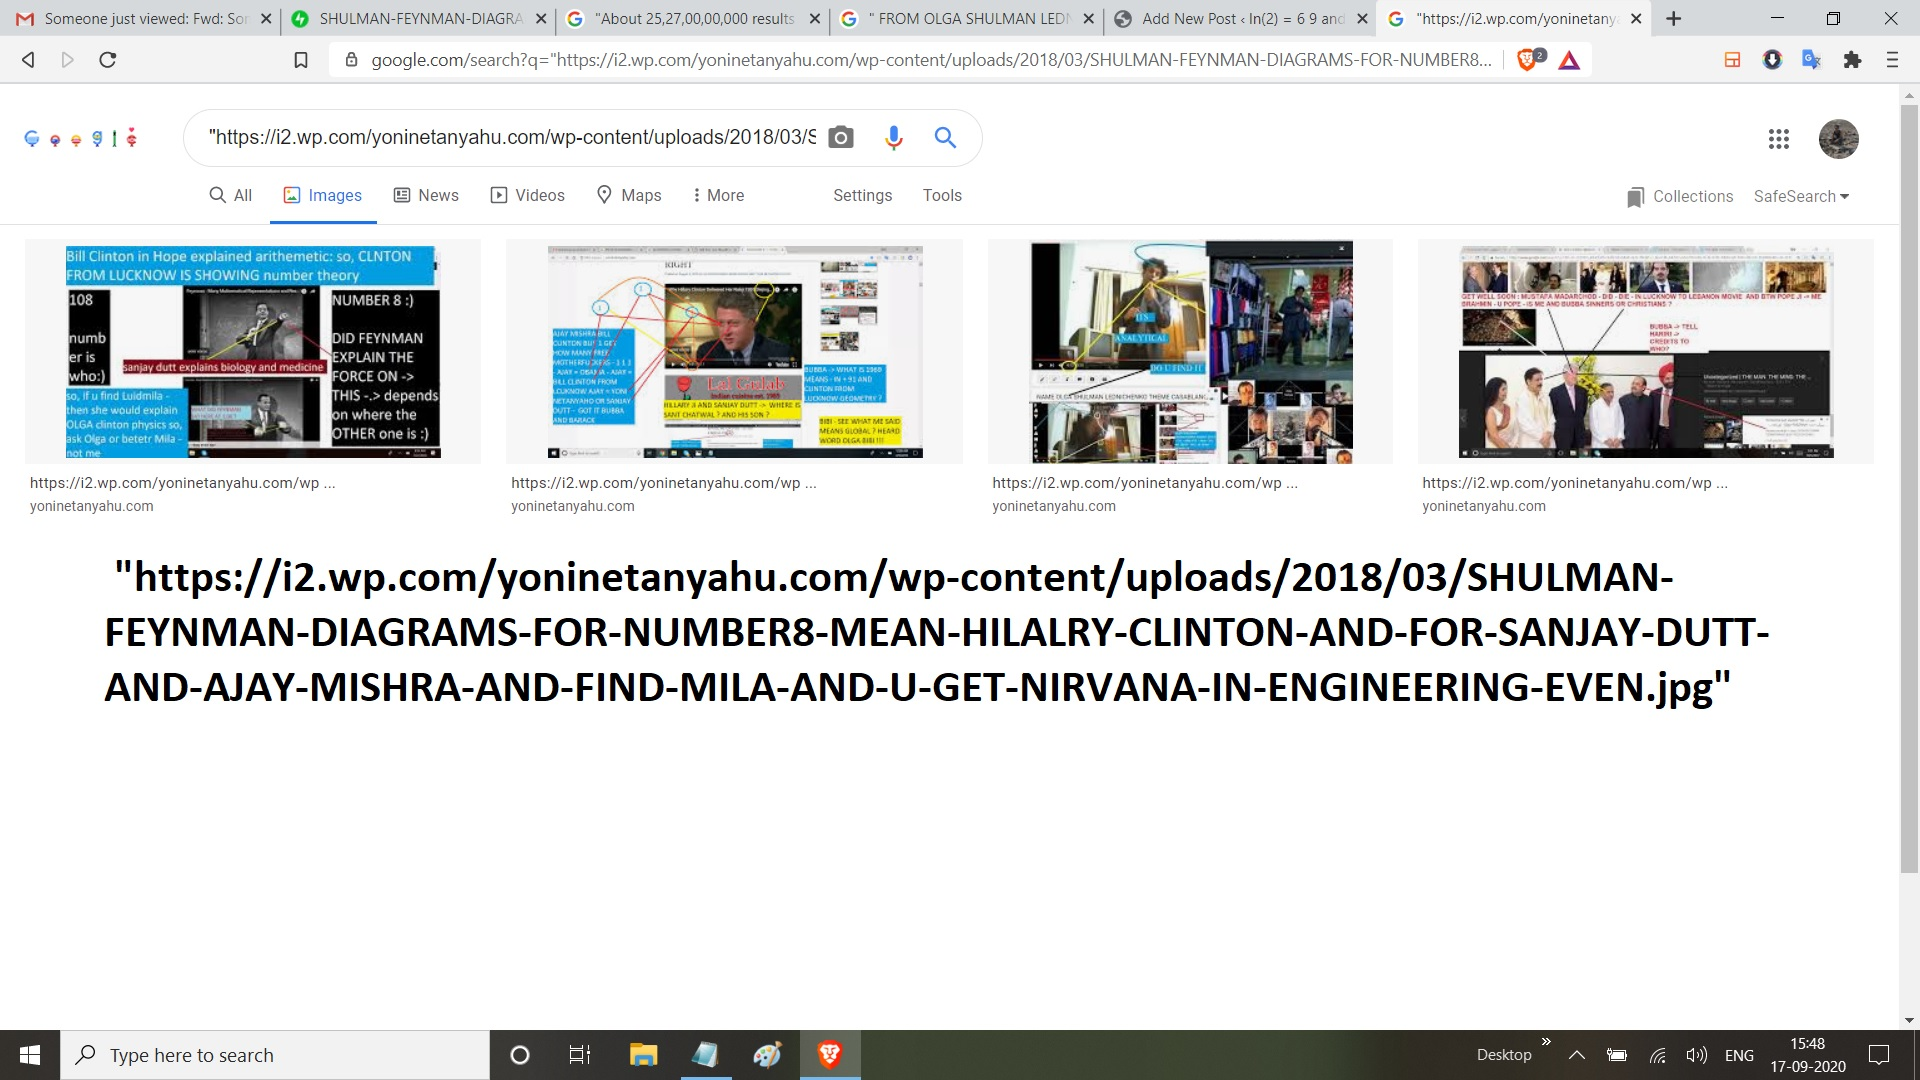 SHULMAN-FEYNMAN-DIAGRAMS-FOR-NUMBER8-MEAN-HILALRY-CLINTON-AND-FOR-SANJAY-DUTT-AND-AJAY-MISHRA-AND-FIND-MILA-AND-U-GET-NIRVANA-IN-ENGINEERING-EVEN